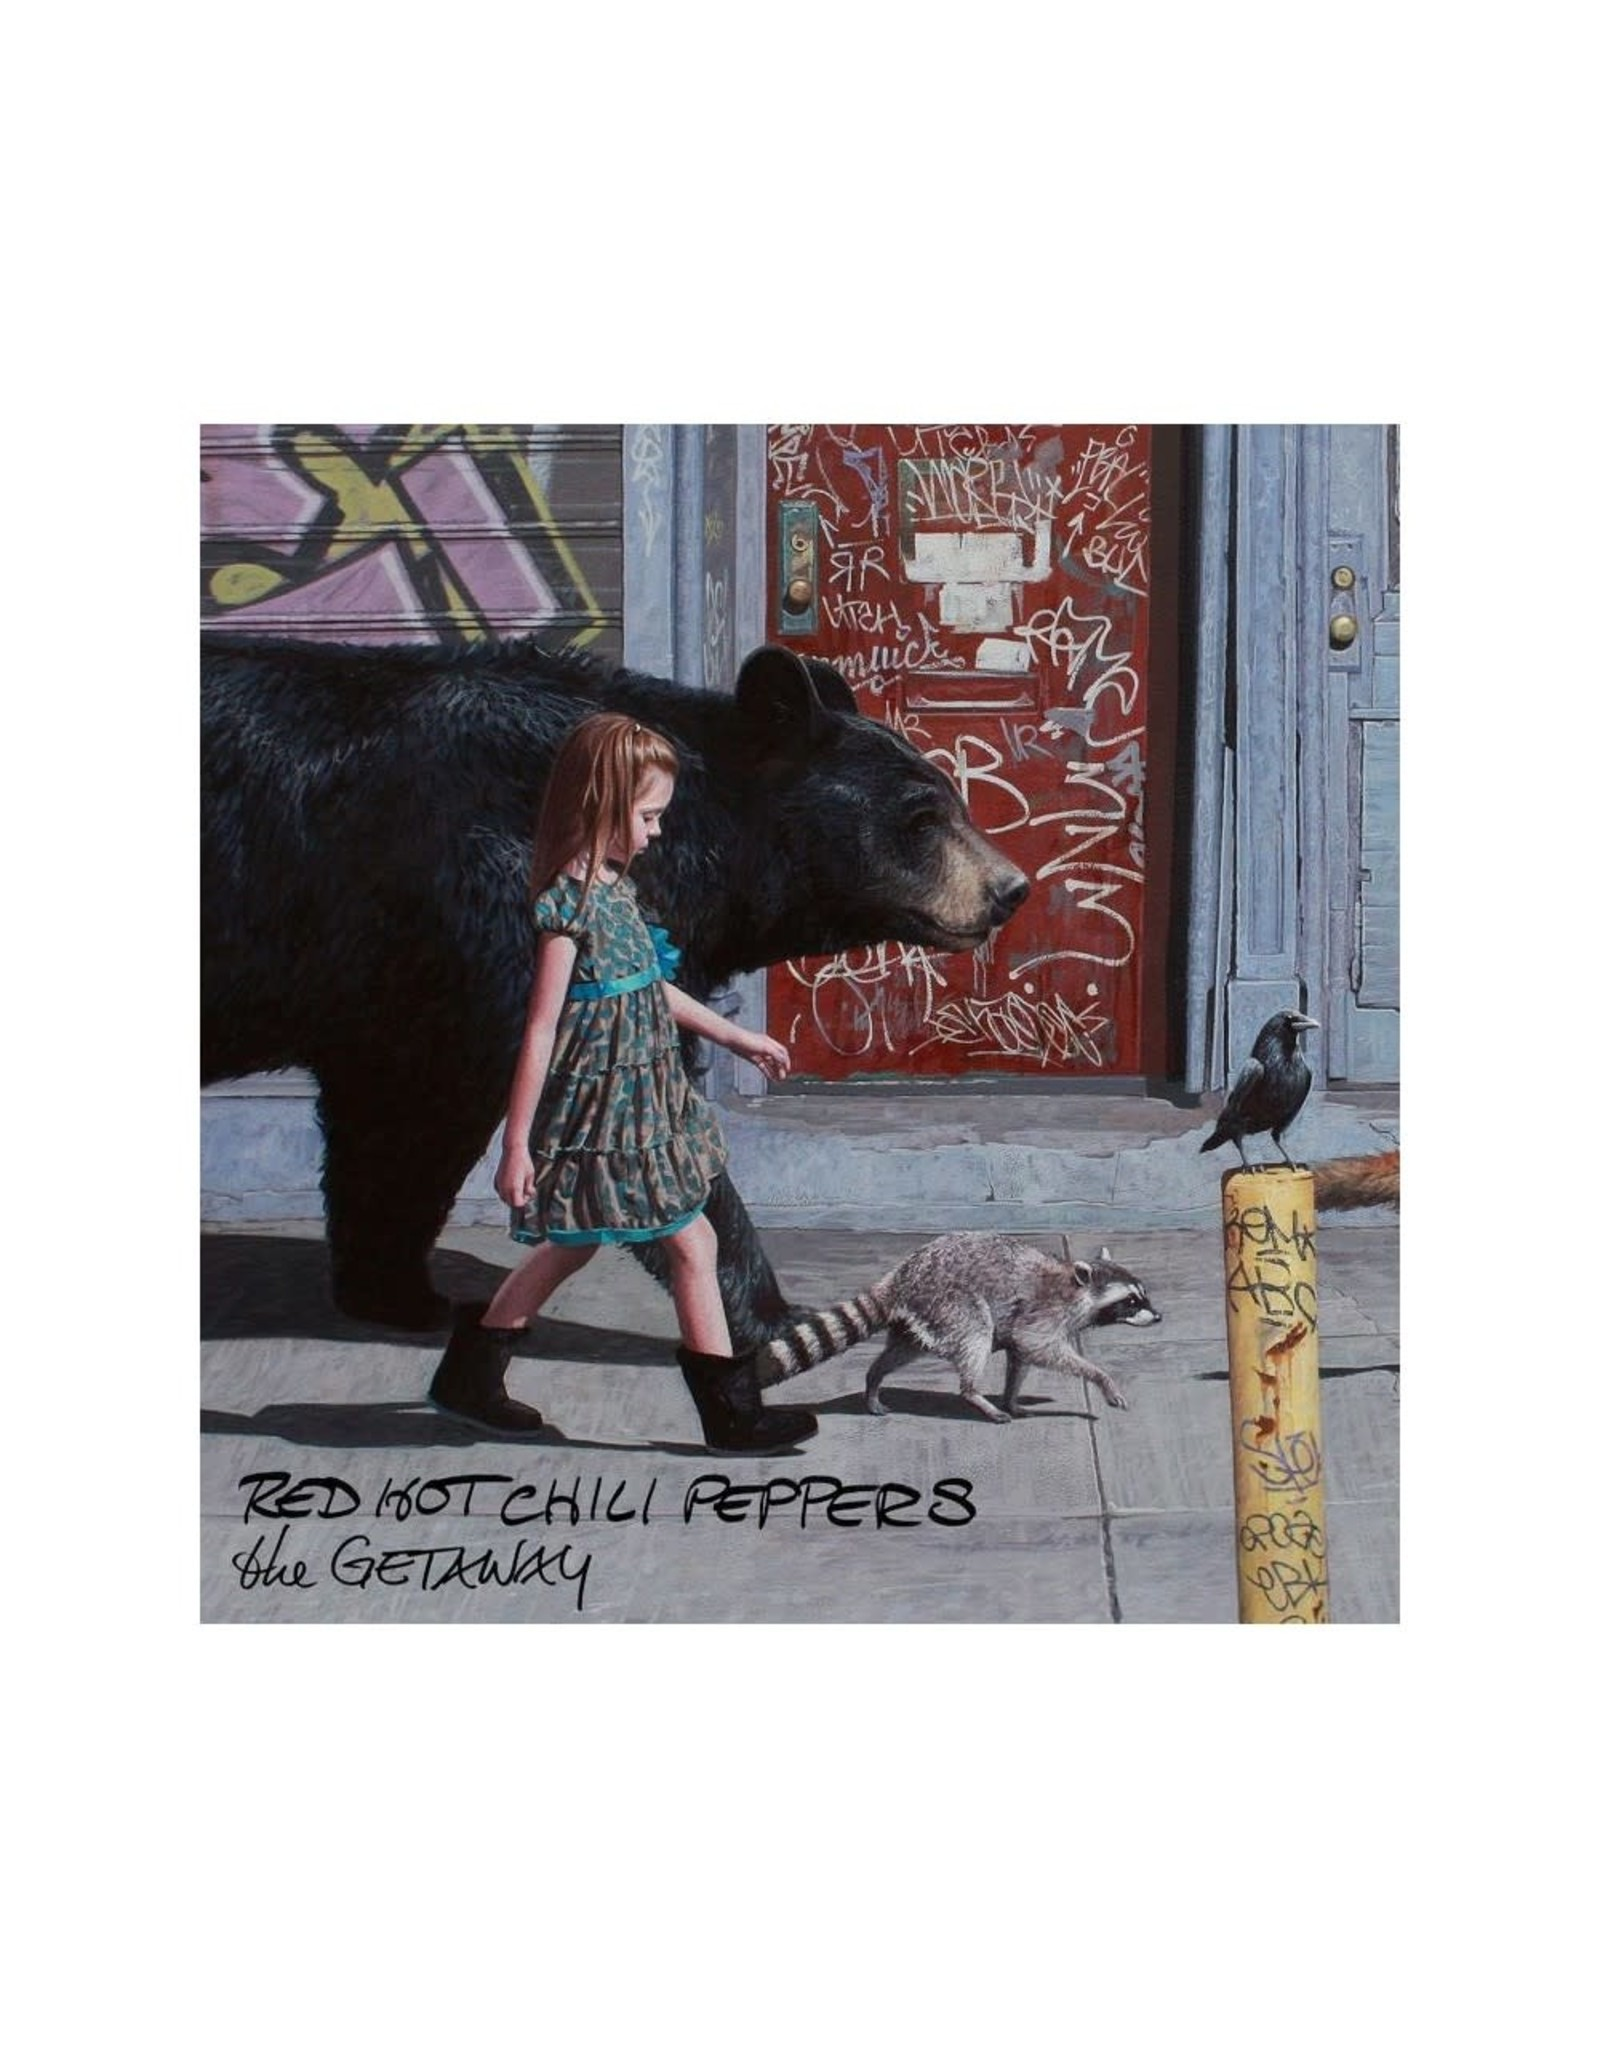 Red Hot Chili Peppers - The Getaway CD